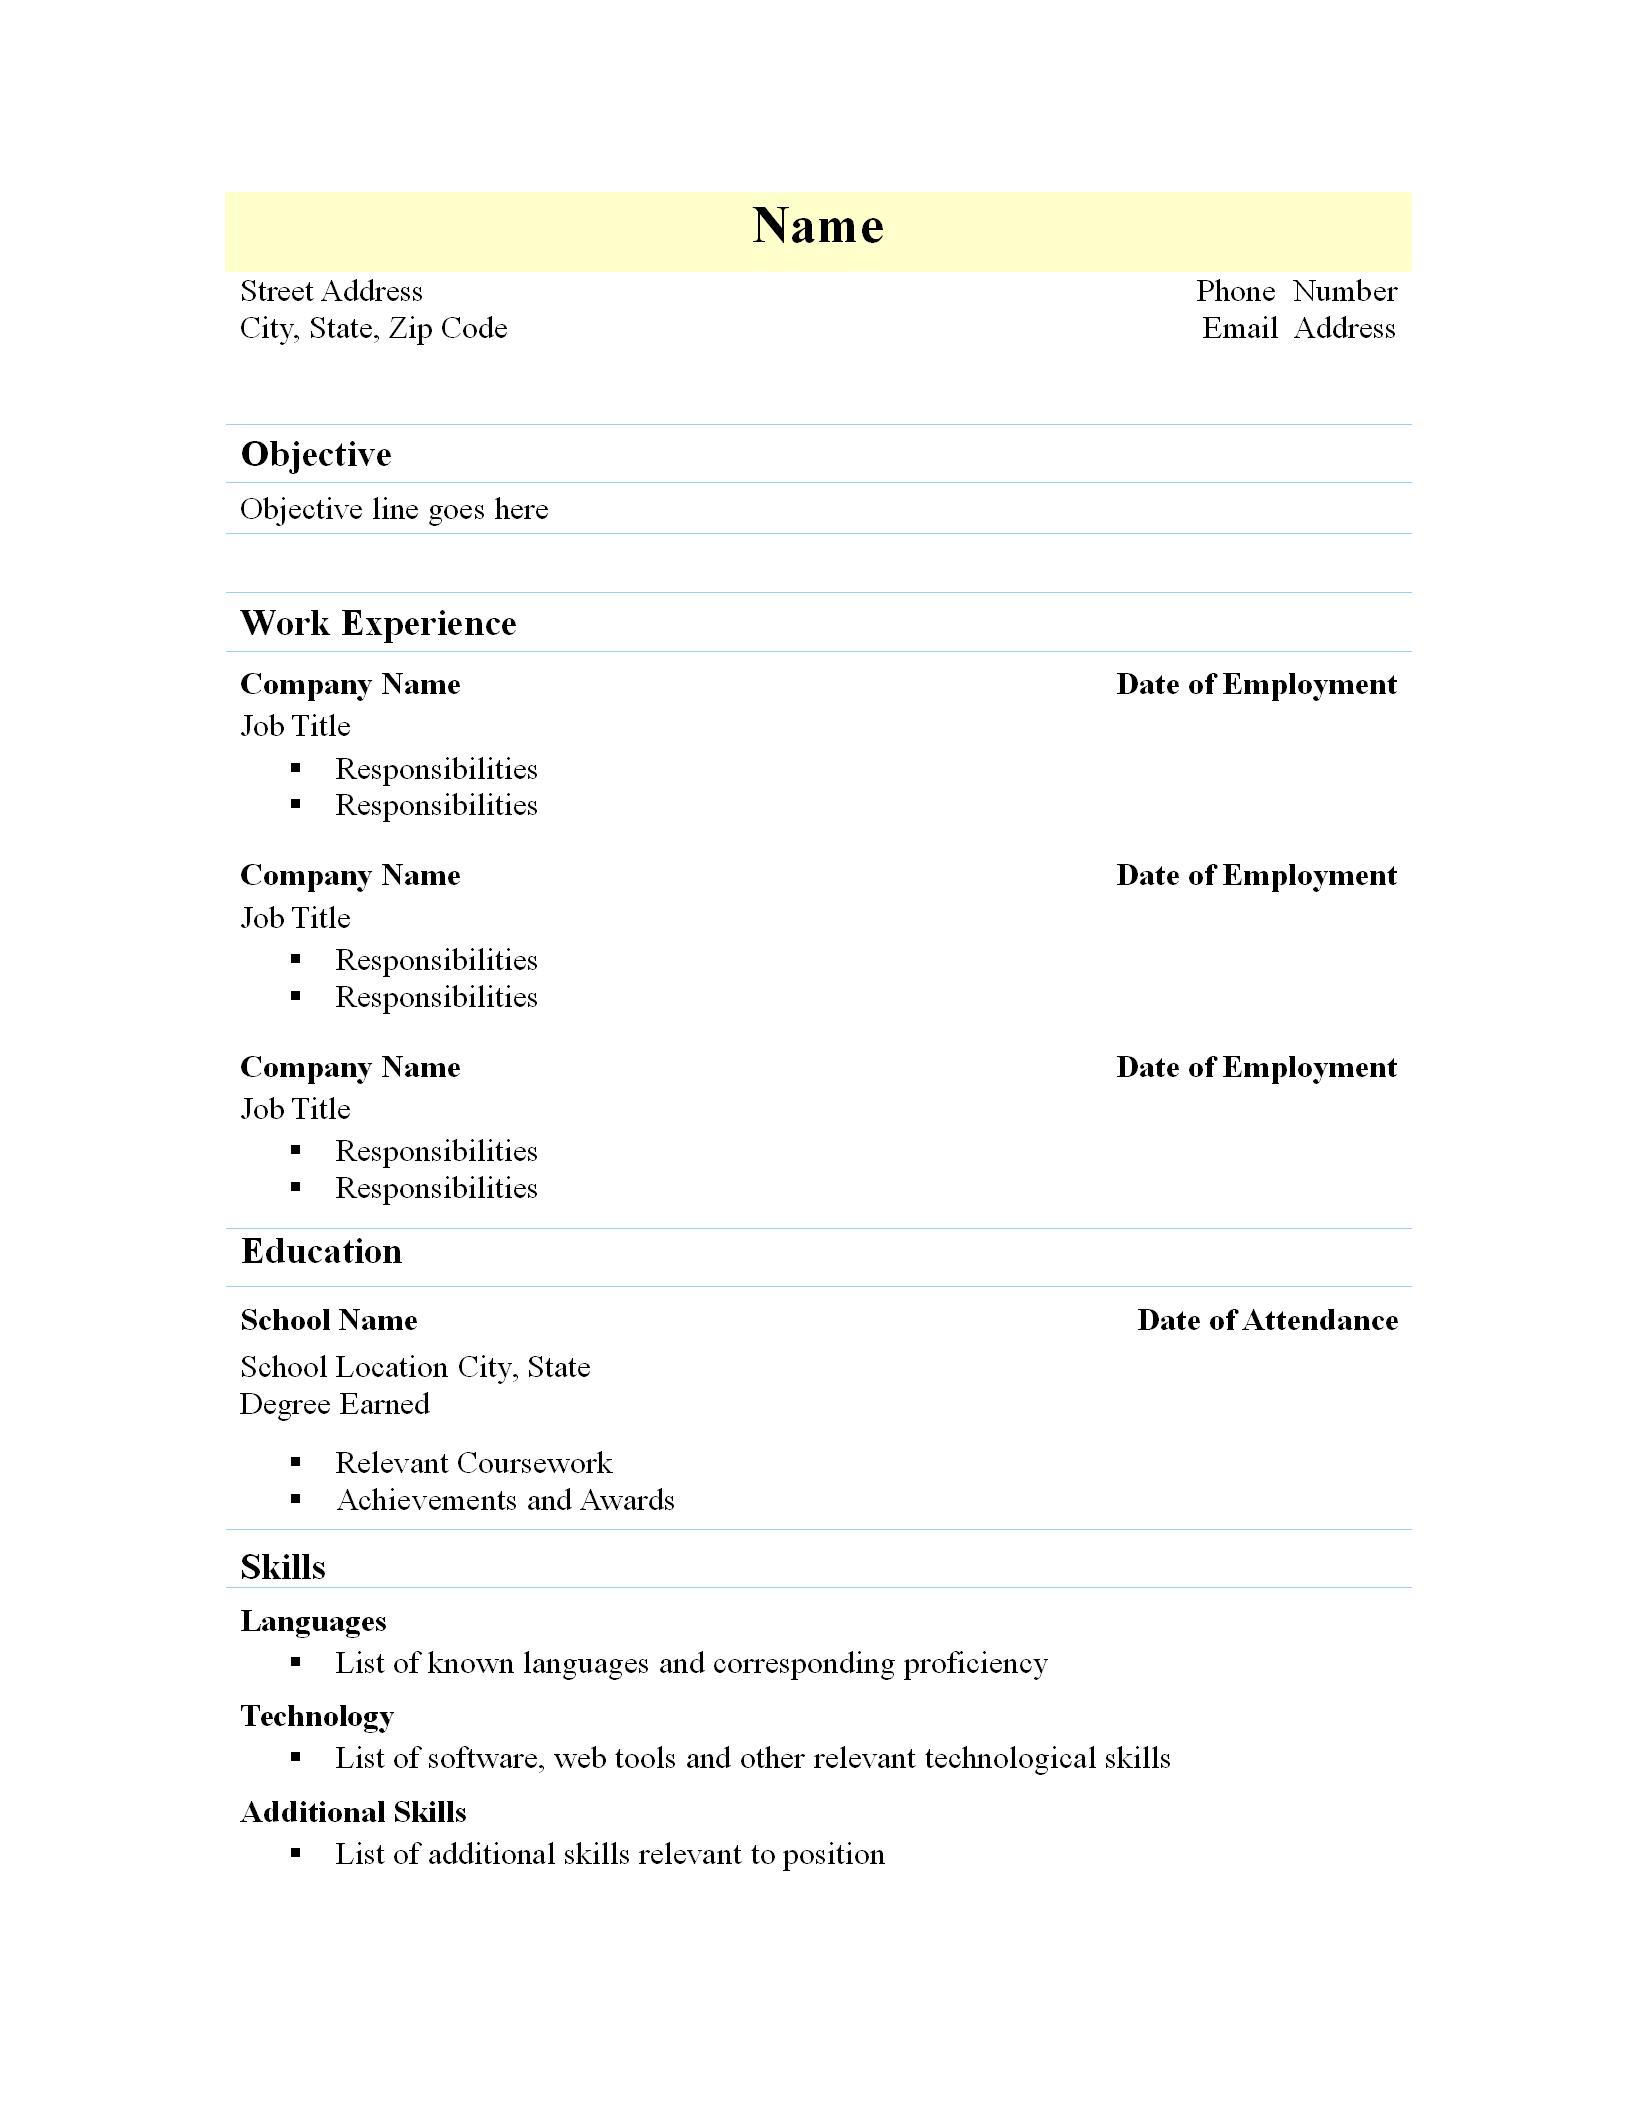 template free writer presentation spreadsheet templates simple resume format for freshers Resume Free Download Simple Resume Format For Freshers